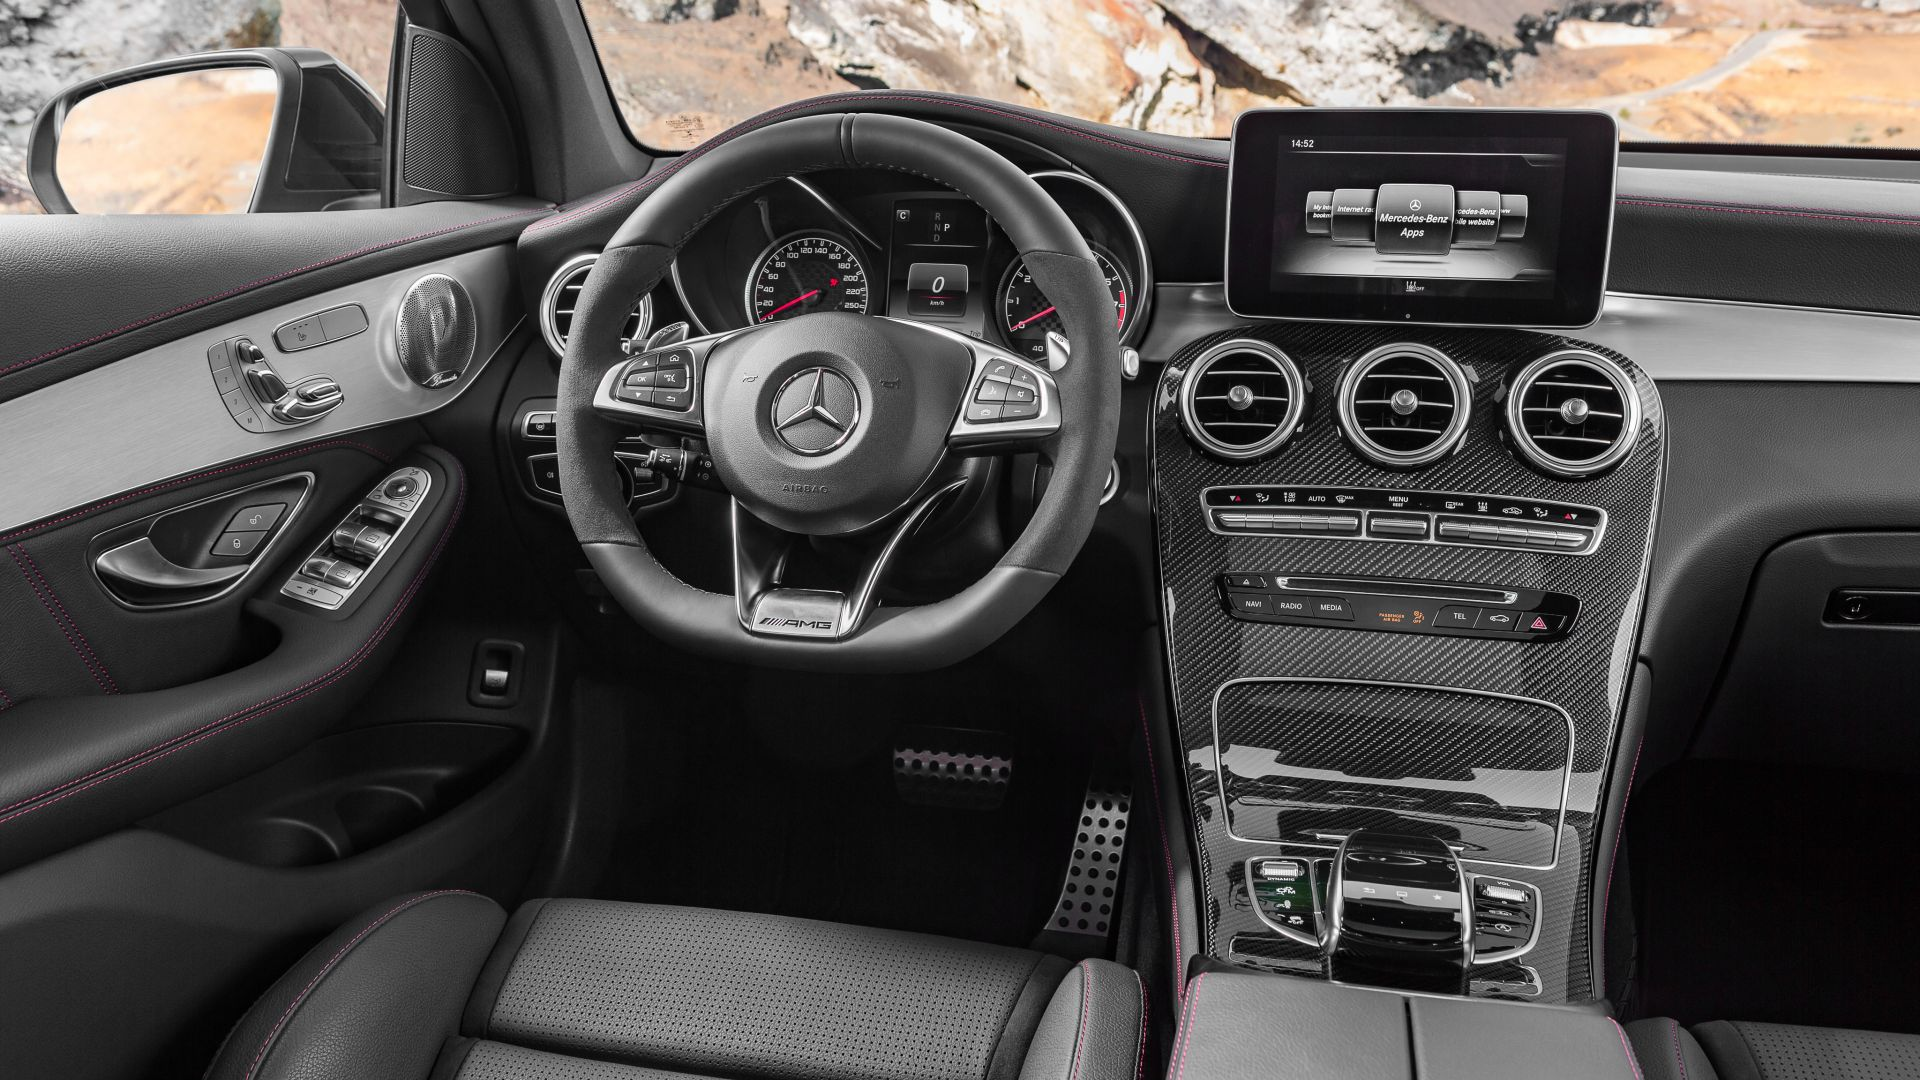 Mercedes-AMG GLC 43, 4MATIC (X253), NYIAS 2016, crossover, interior (horizontal)